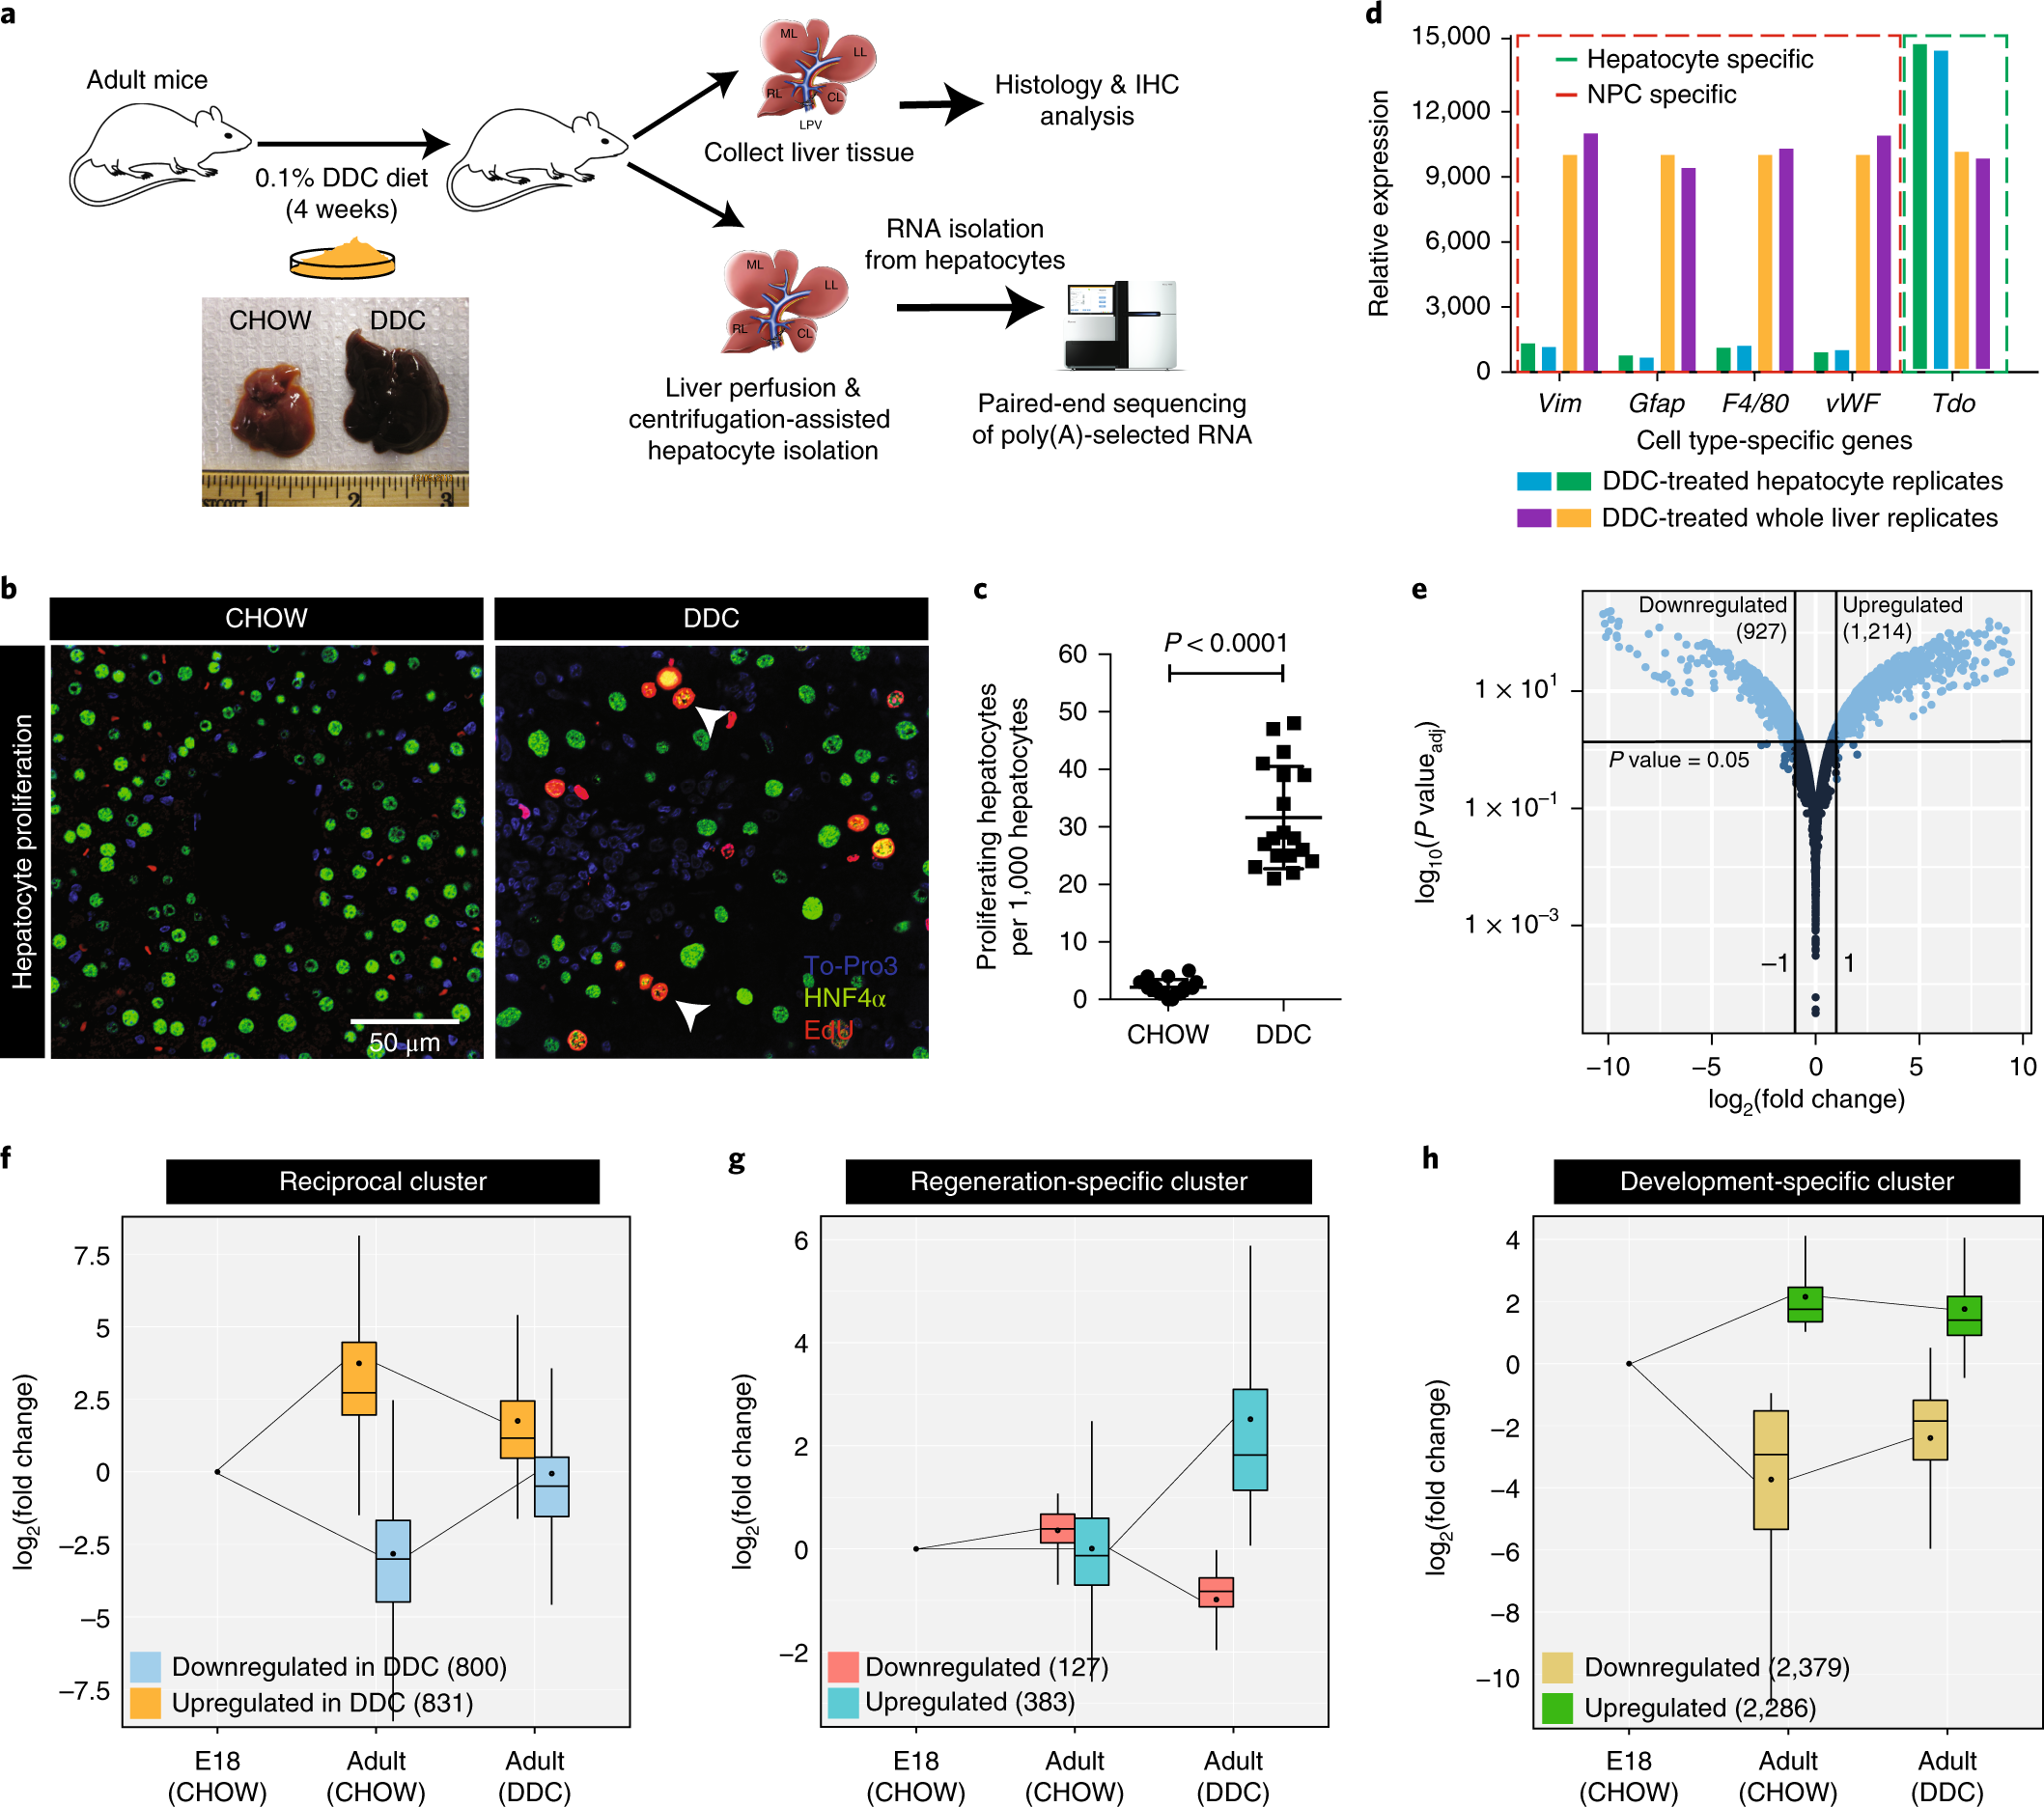 Alternative splicing rewires Hippo signaling pathway in hepatocytes to  promote liver regeneration | Nature Structural & Molecular Biology